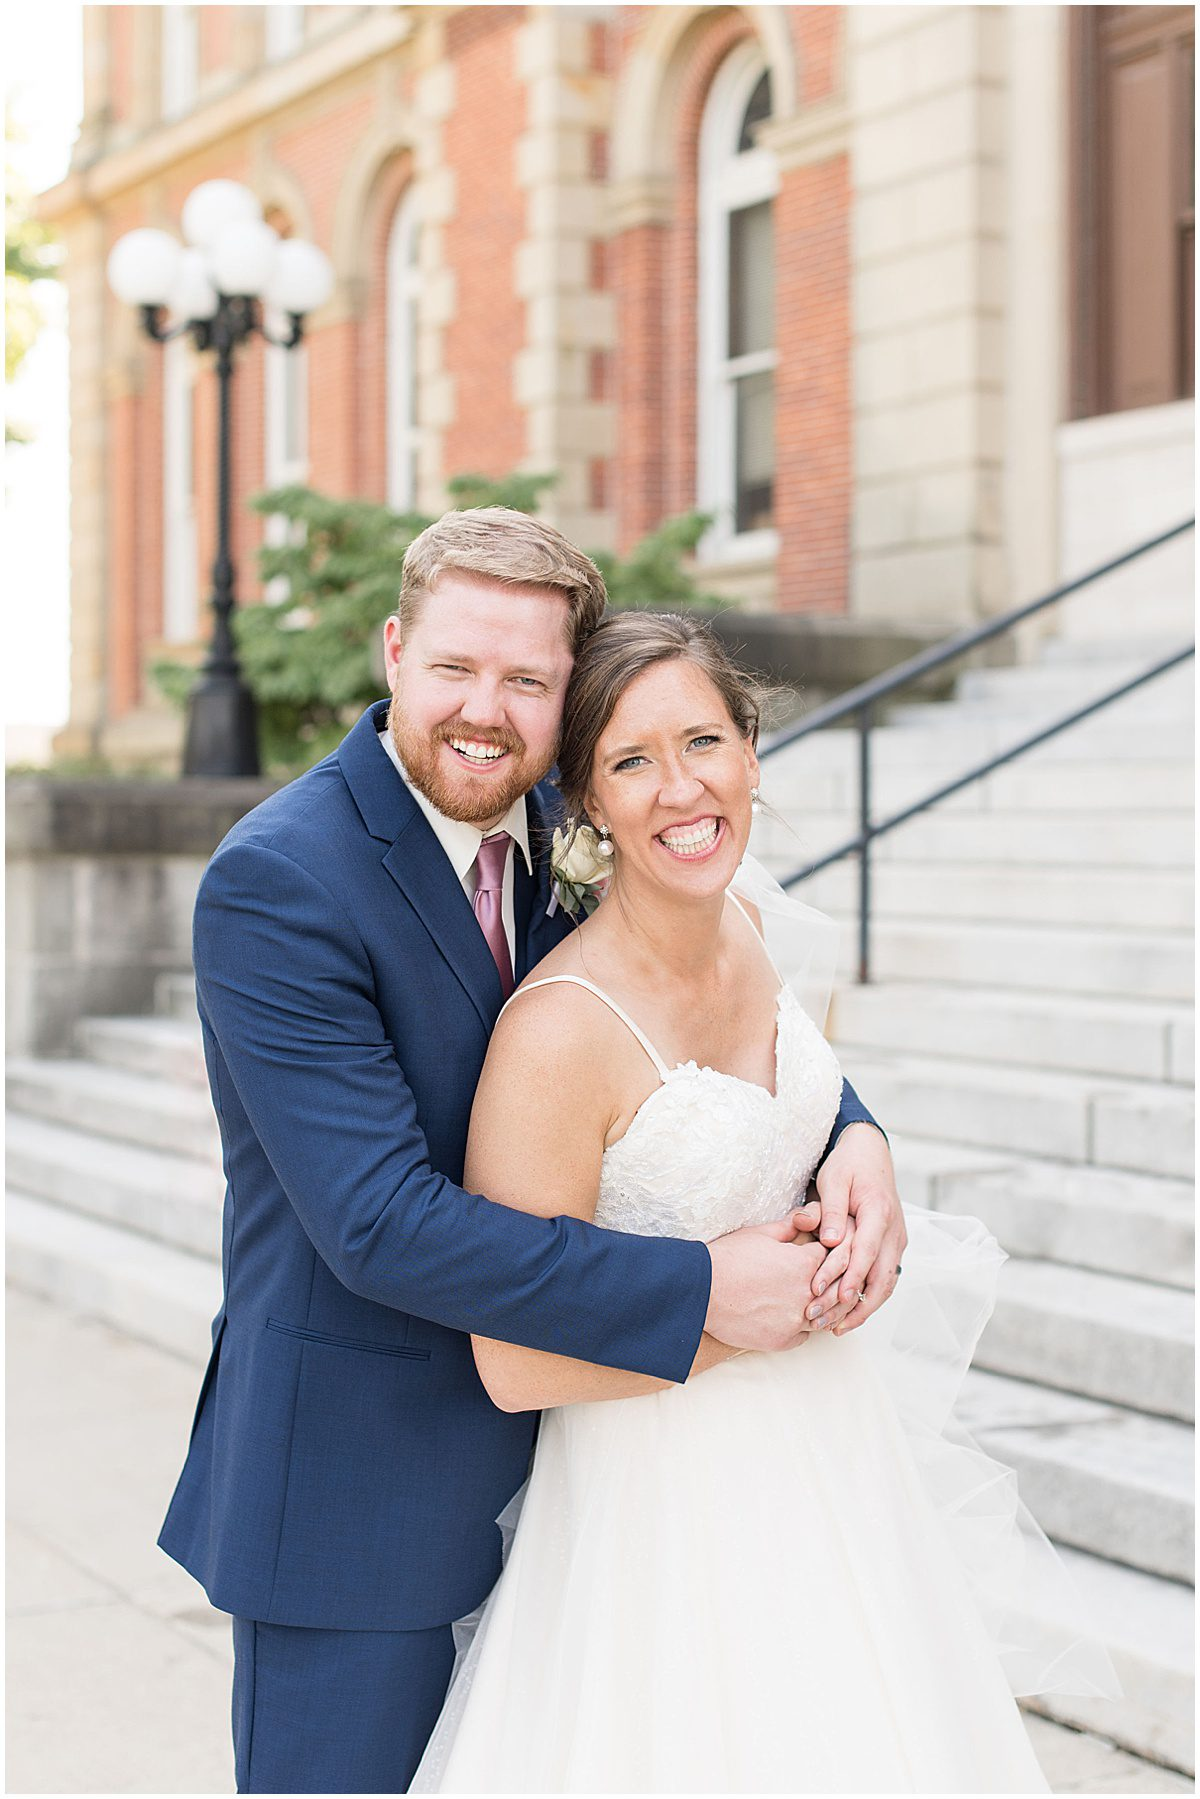 Just married photos after Spohn Ballroom wedding in Goshen, Indiana by Victoria Rayburn Photography